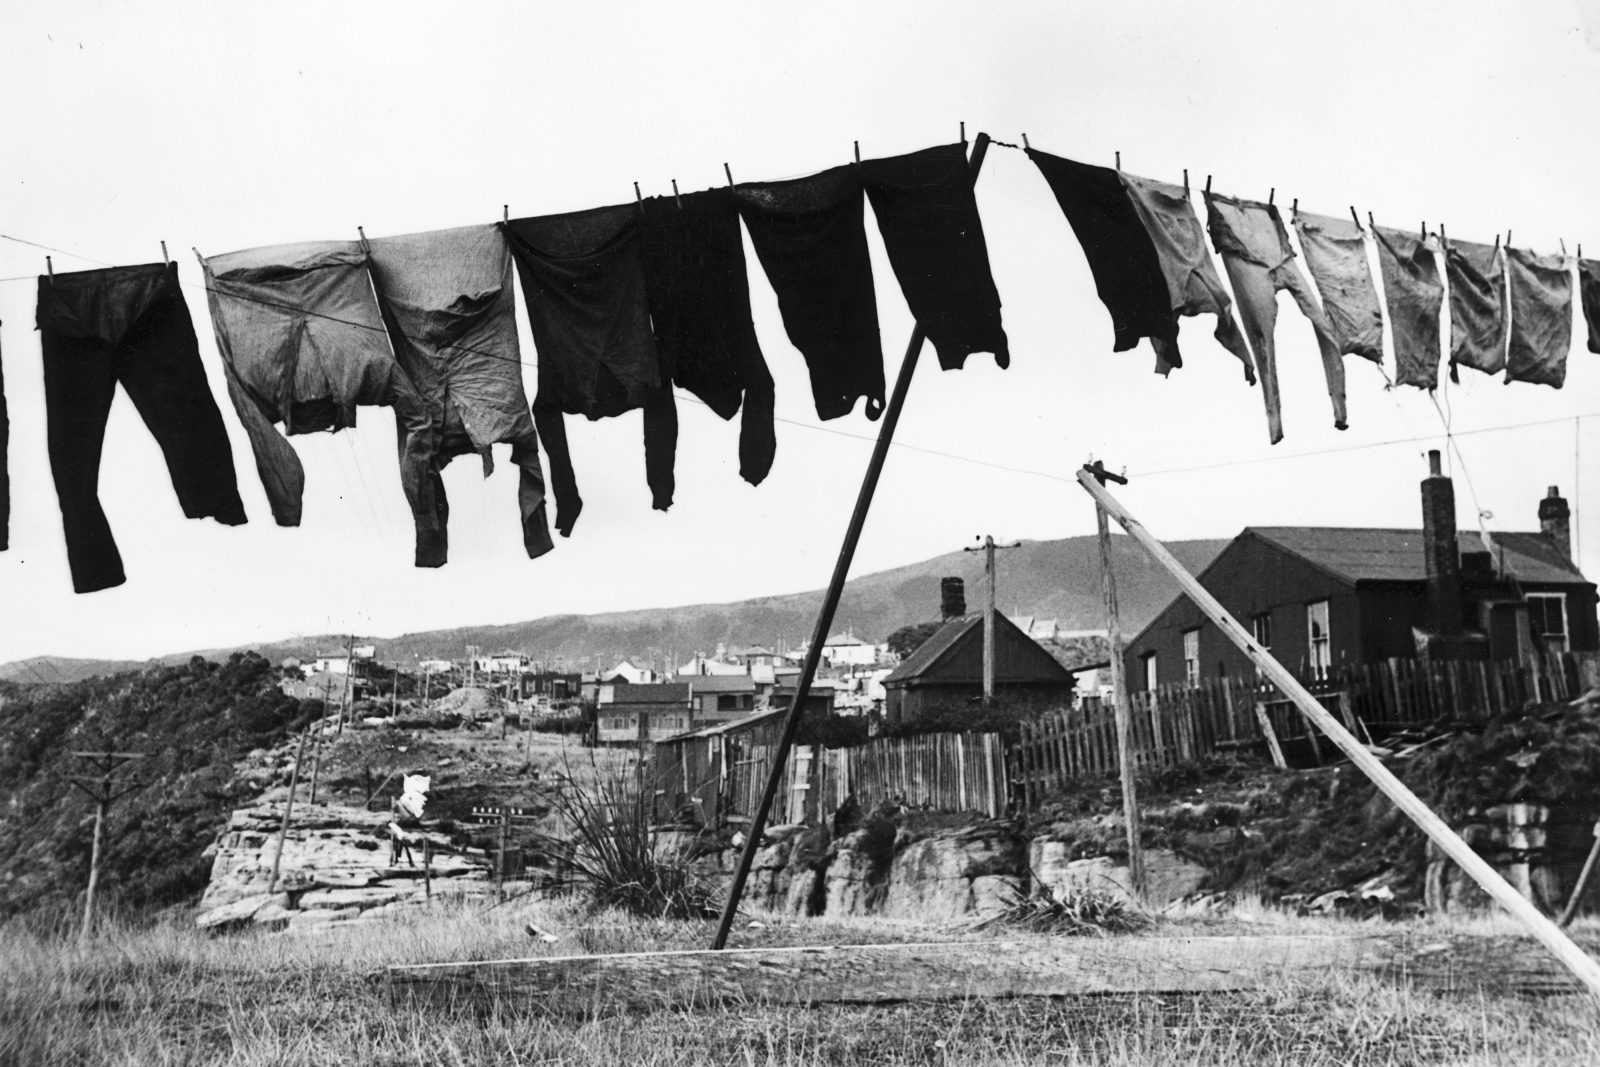 It was a rare Denniston day that clothes could be hung outside to dry. In a place that attracts five metres of rainfall a year, clothes were more likely to be hung over a coal range in miners' cottages that clustered along the northern edge of the plateau. During the peak coal years, 1500 people lived in Denniston and the nearby community of Burnetts Face, and the plateau was the largest coal supplier in the country.